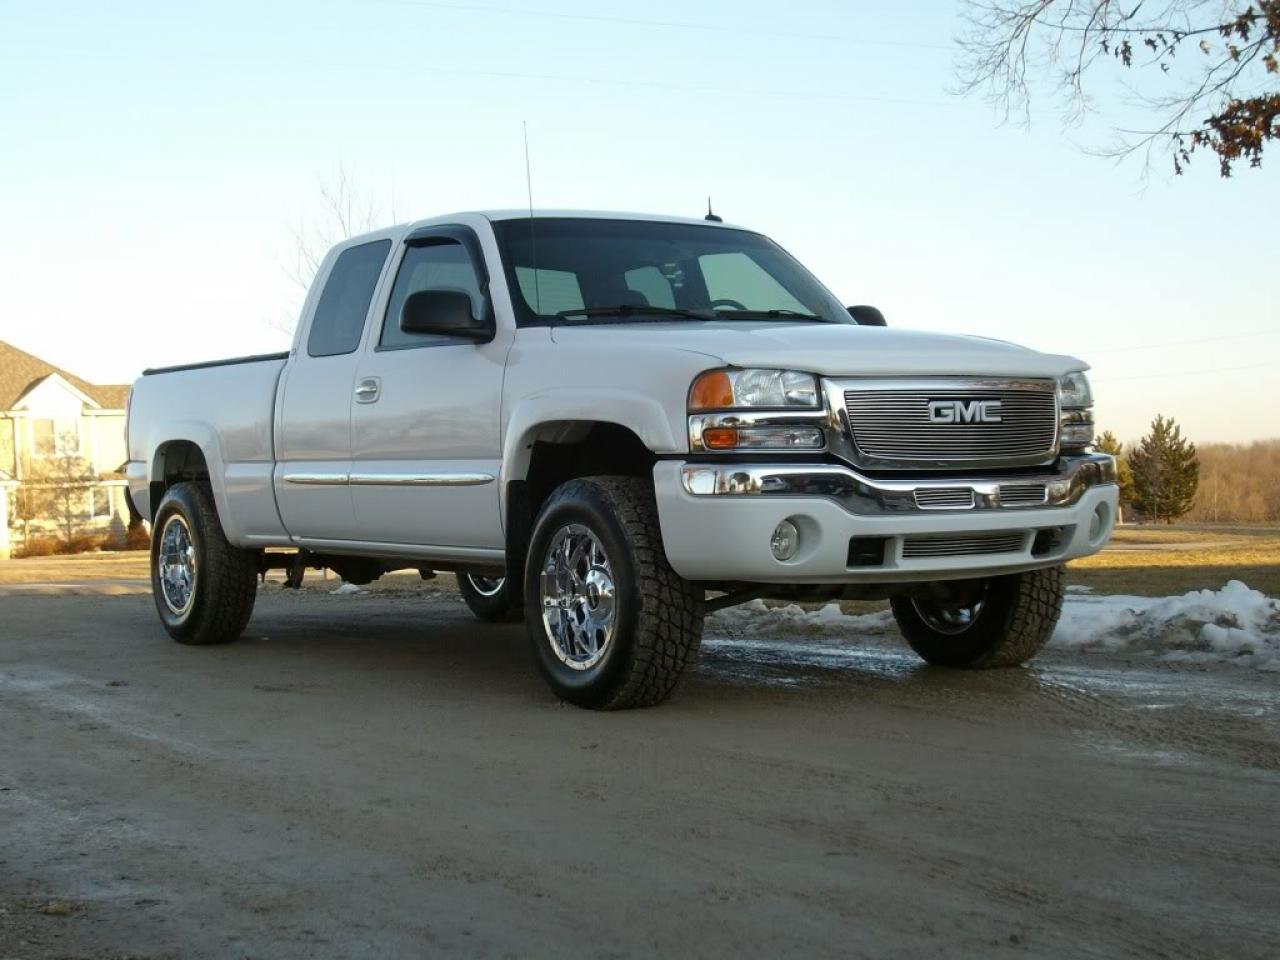 2003 GMC Sierra 1500 - Information and photos - ZombieDrive